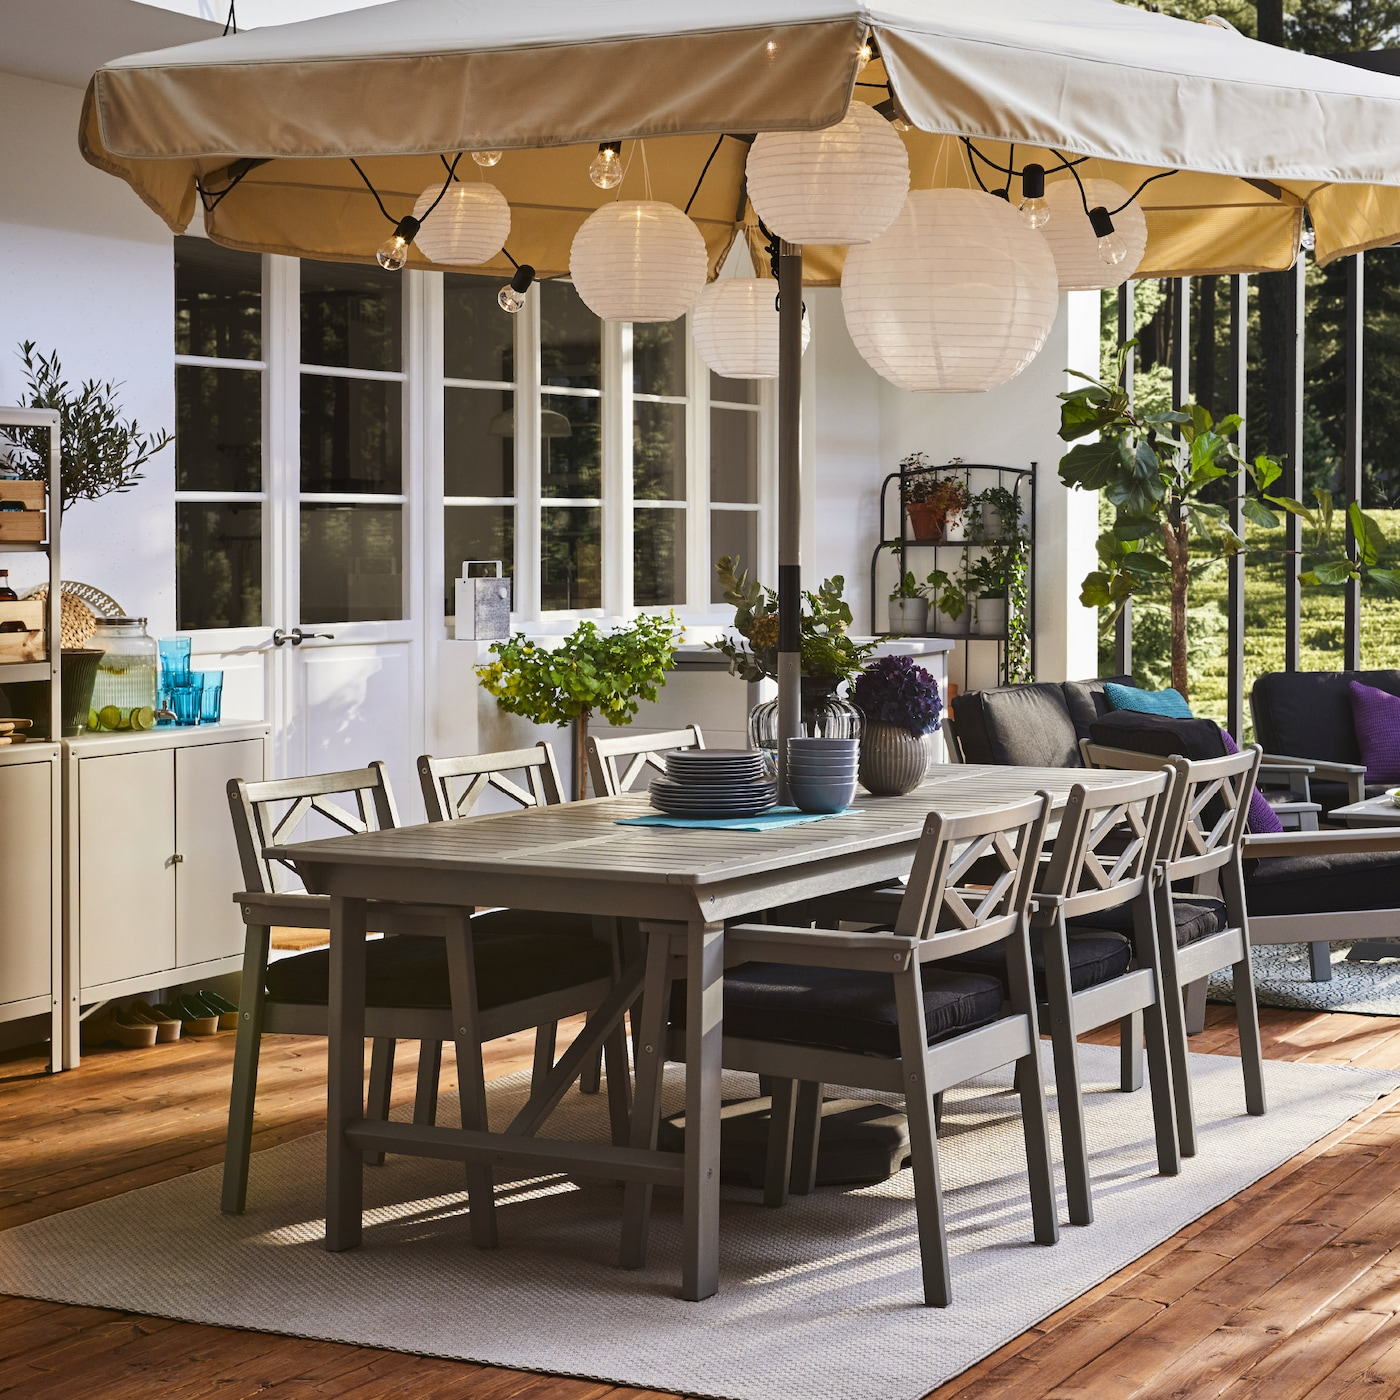 A spacious patio with a table and chairs with armrests in grey, a large parasol, round pendant lamps and a wooden floor deck.